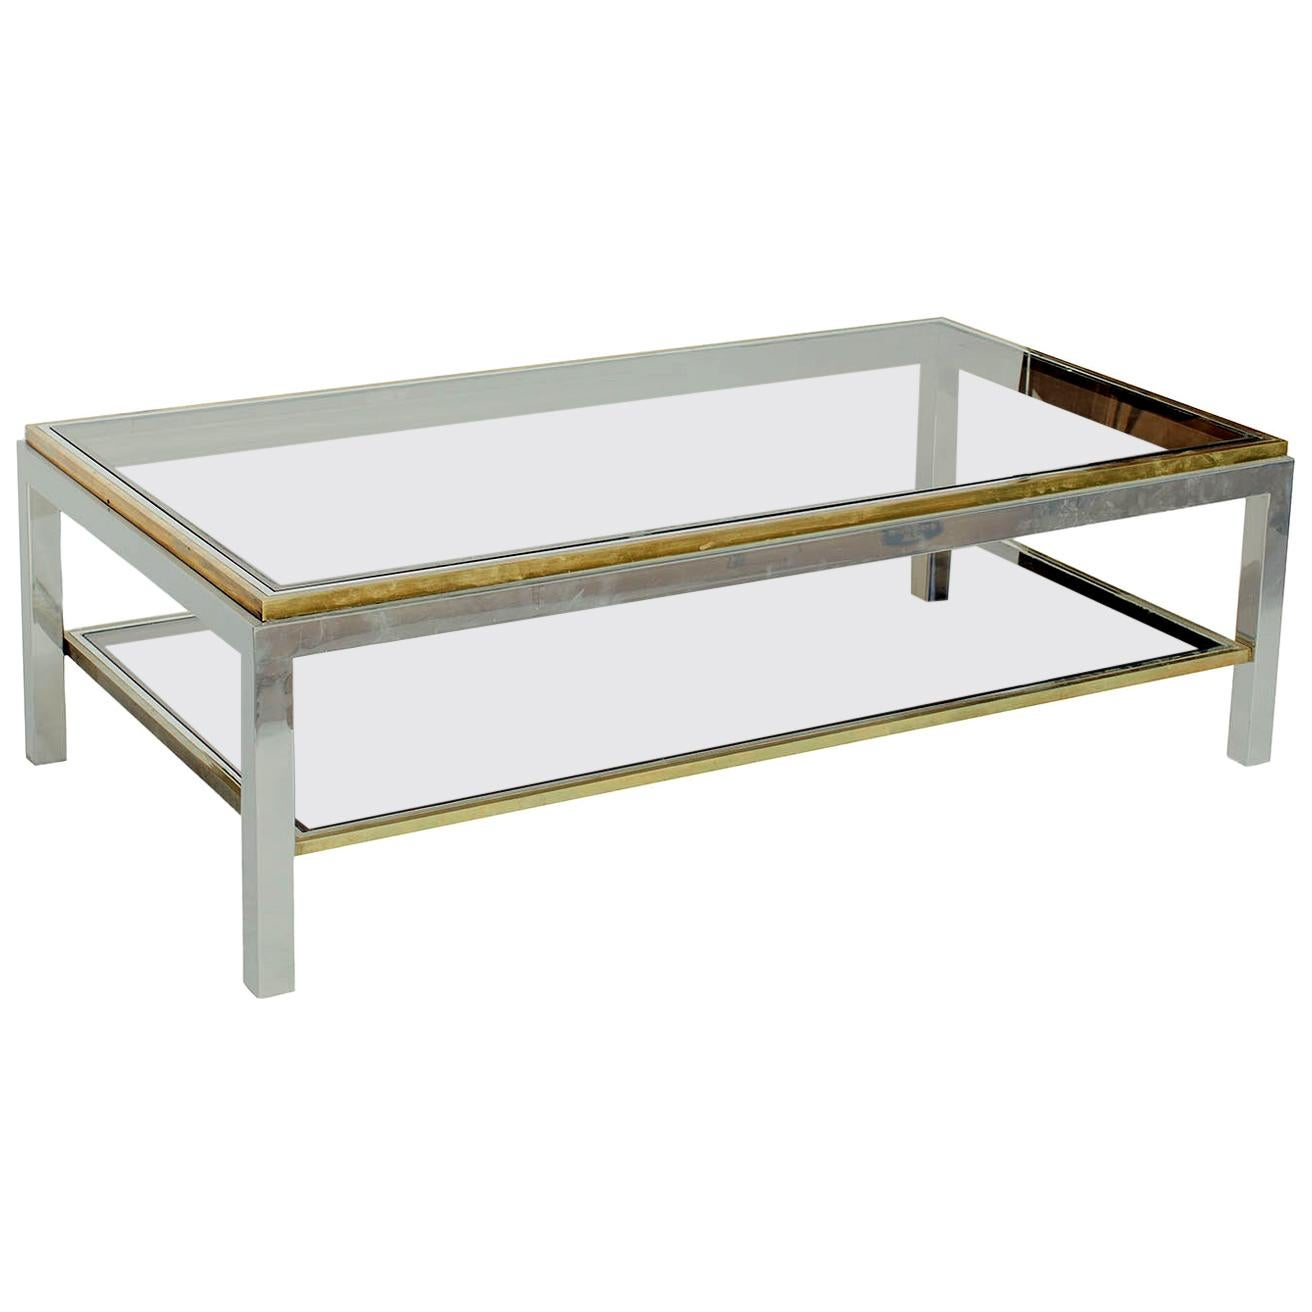 1970s Italian Chrome Brass Coffee Table with Smoked Glass by Willy Rizzo